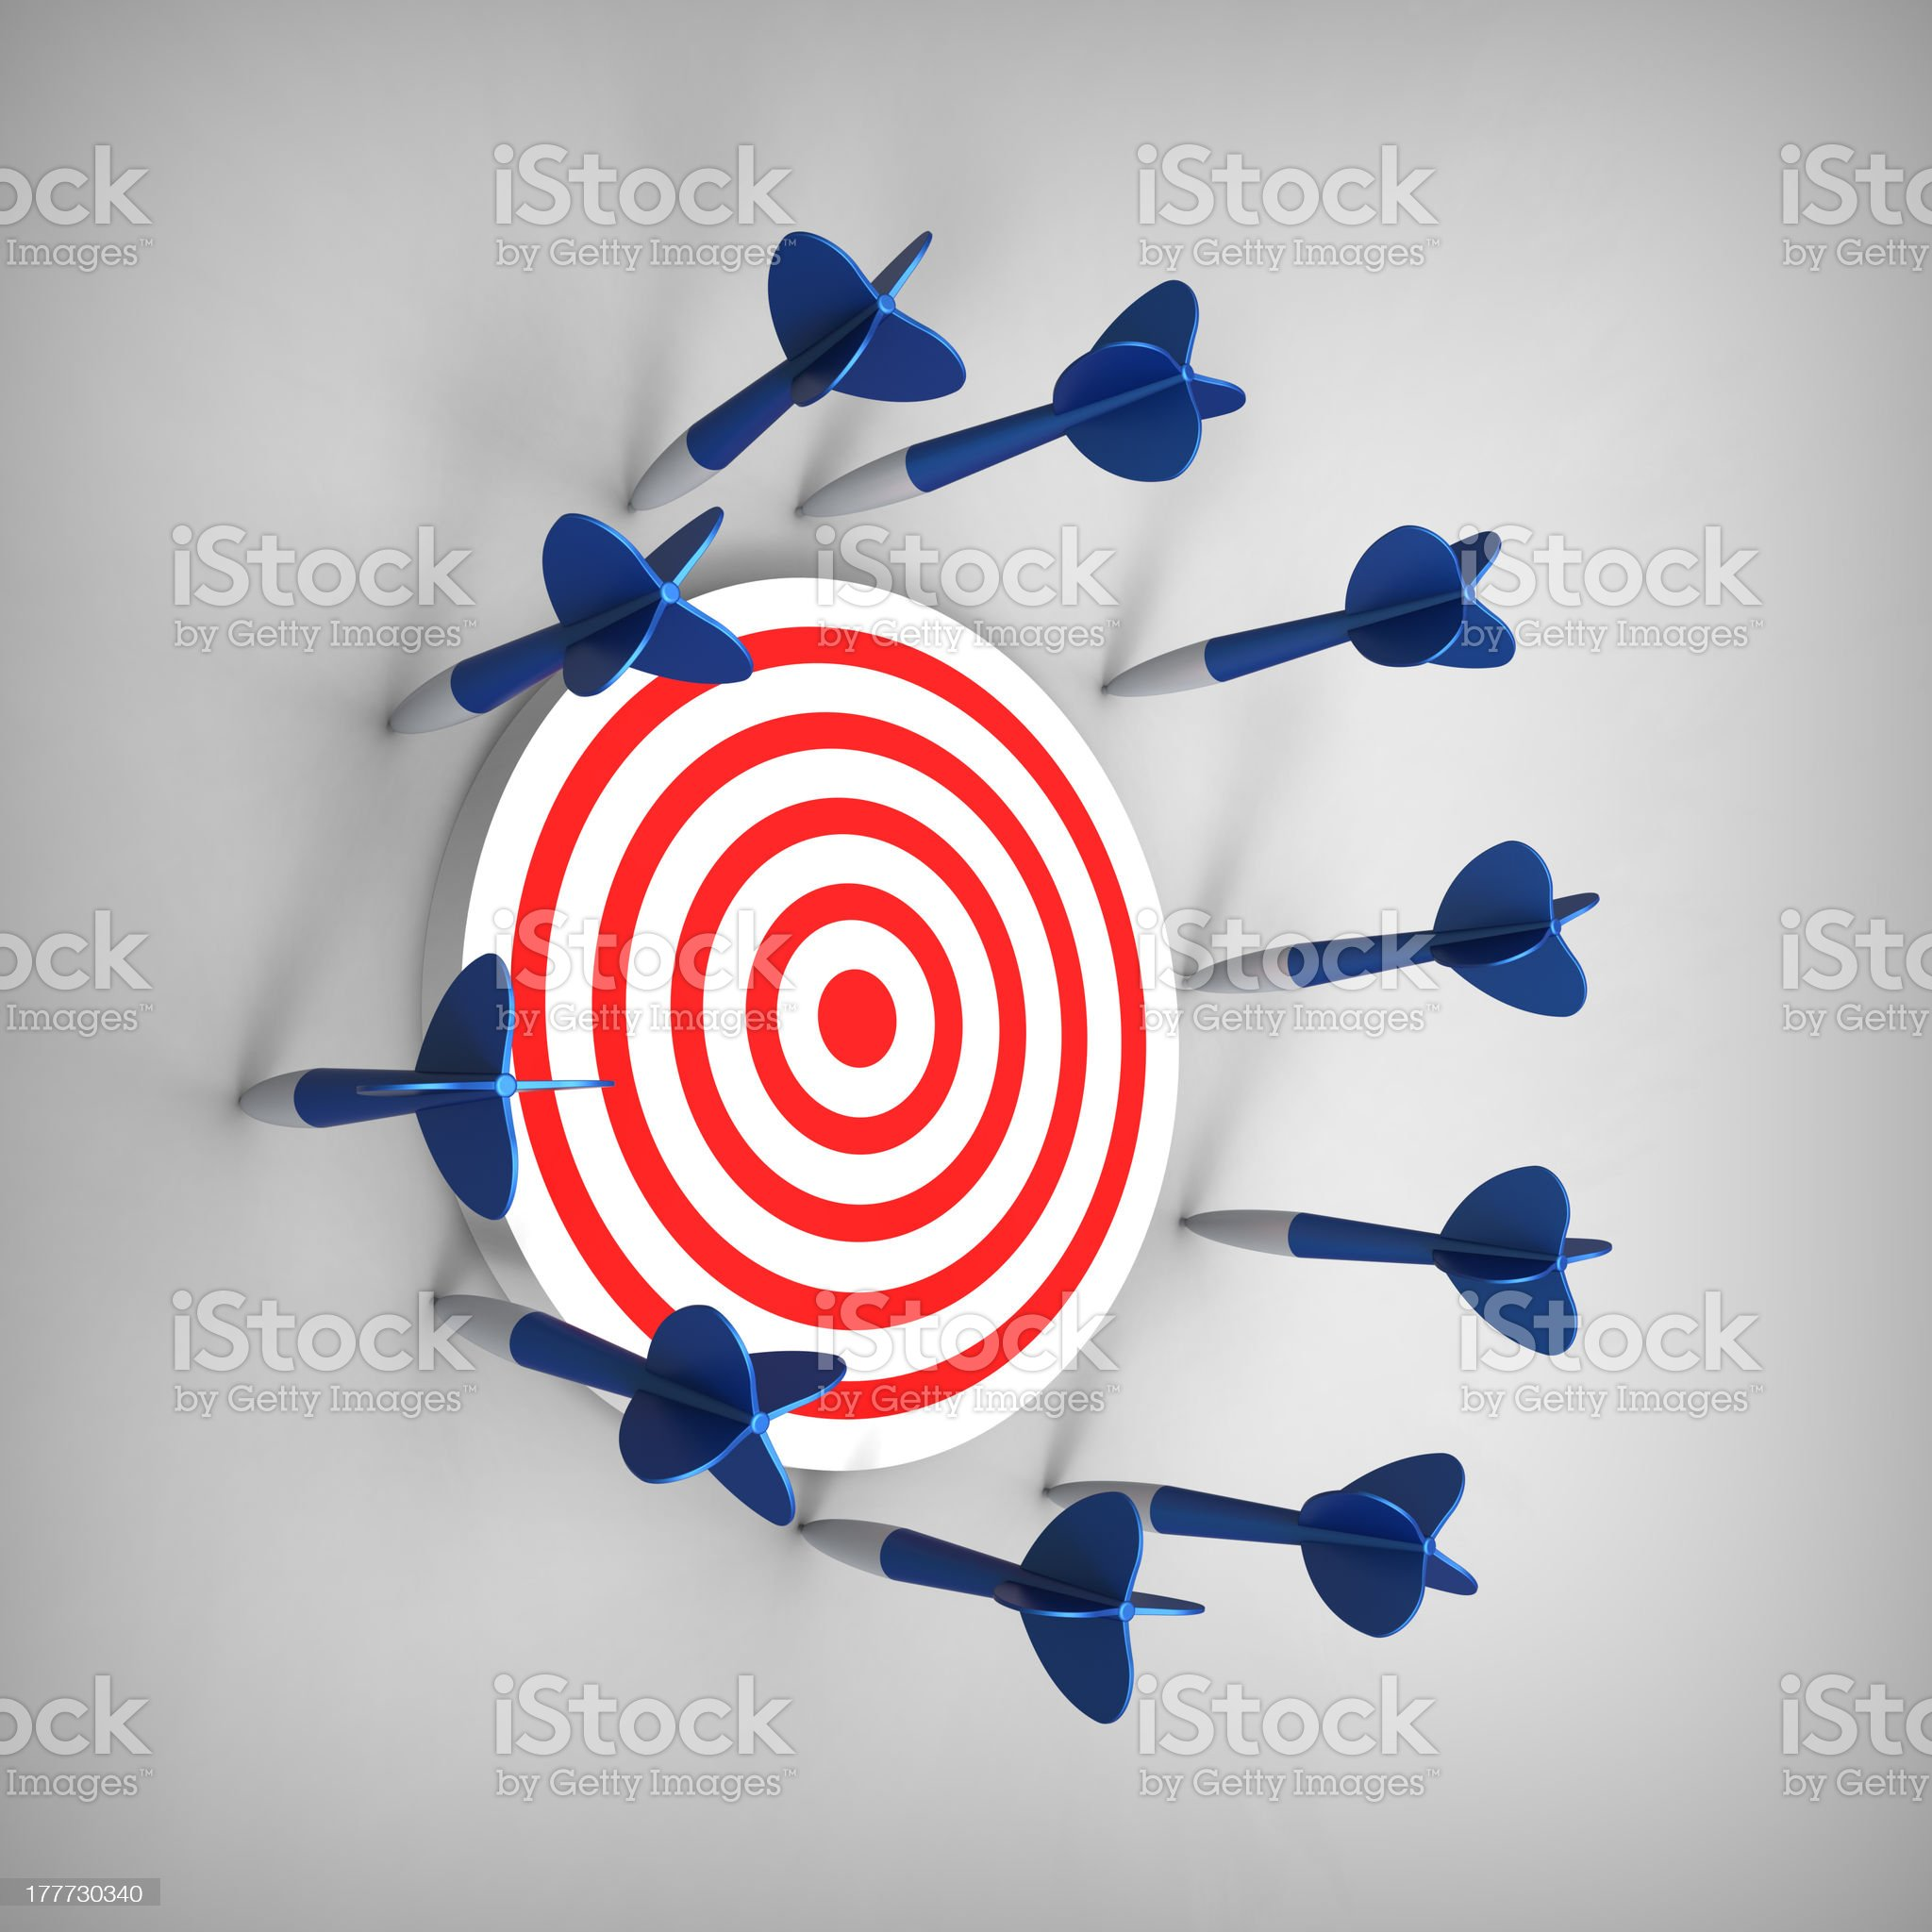 Darts missed its target royalty-free stock photo